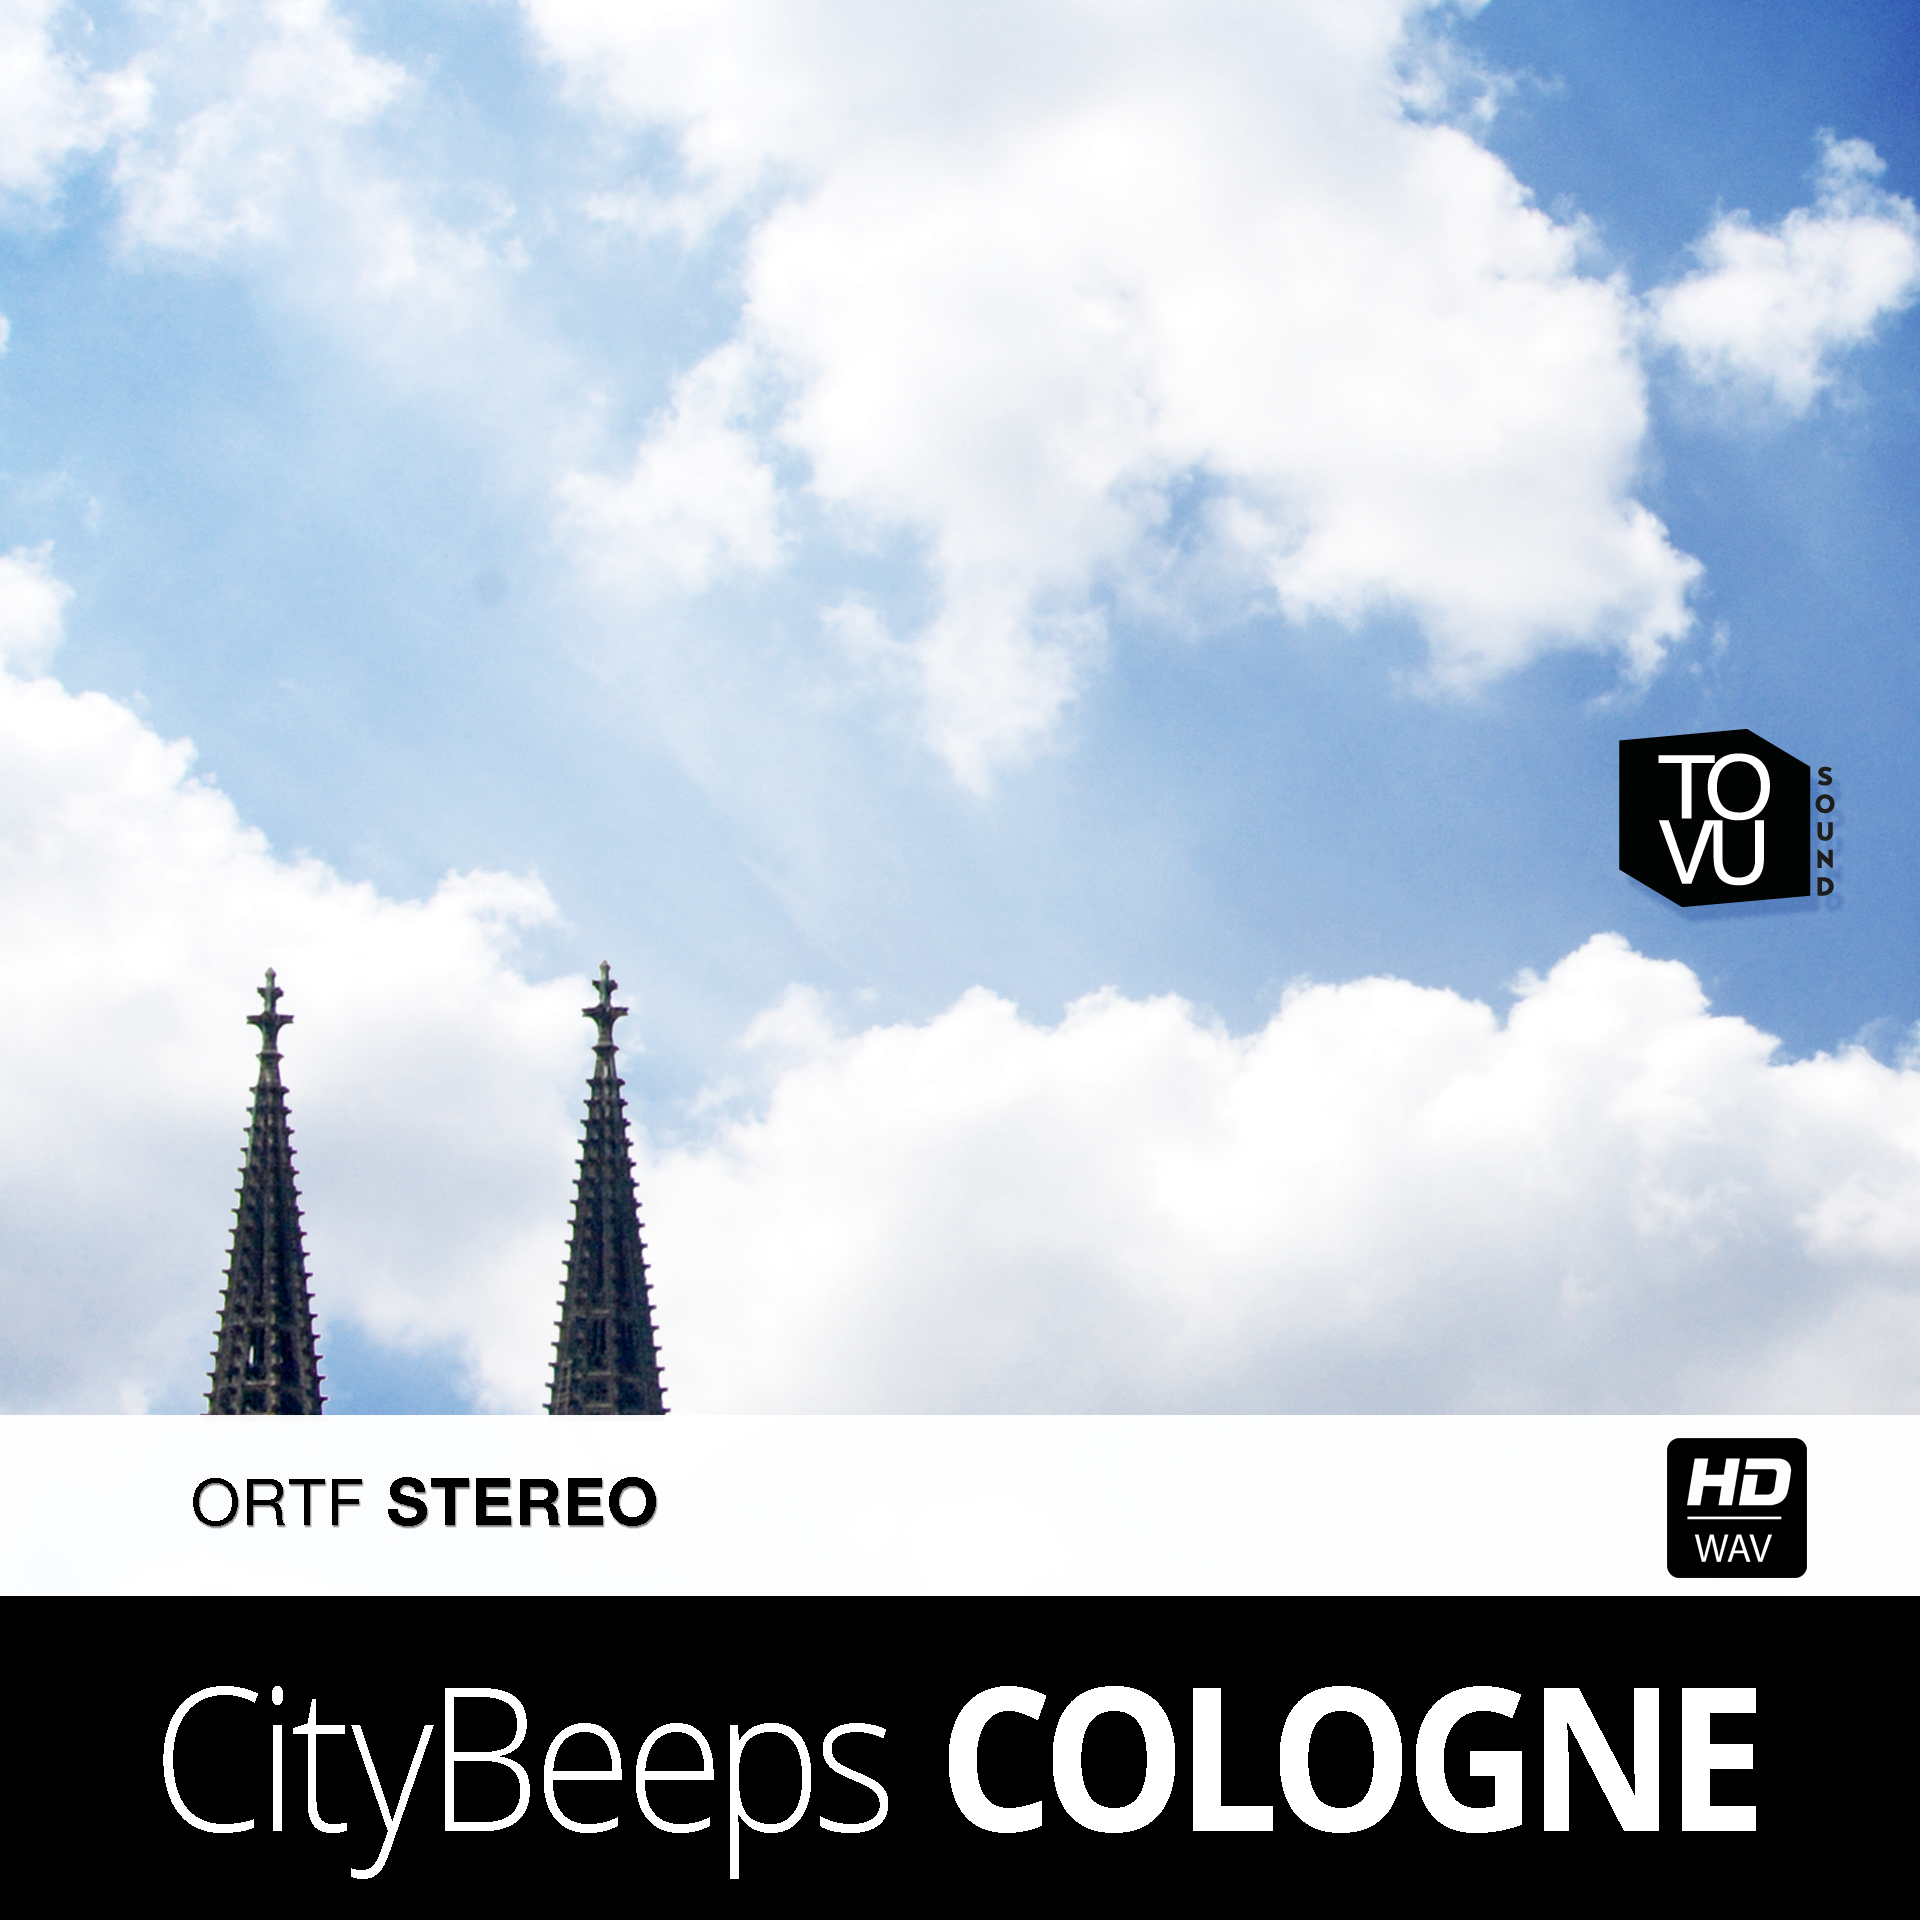 City Beeps Cologne